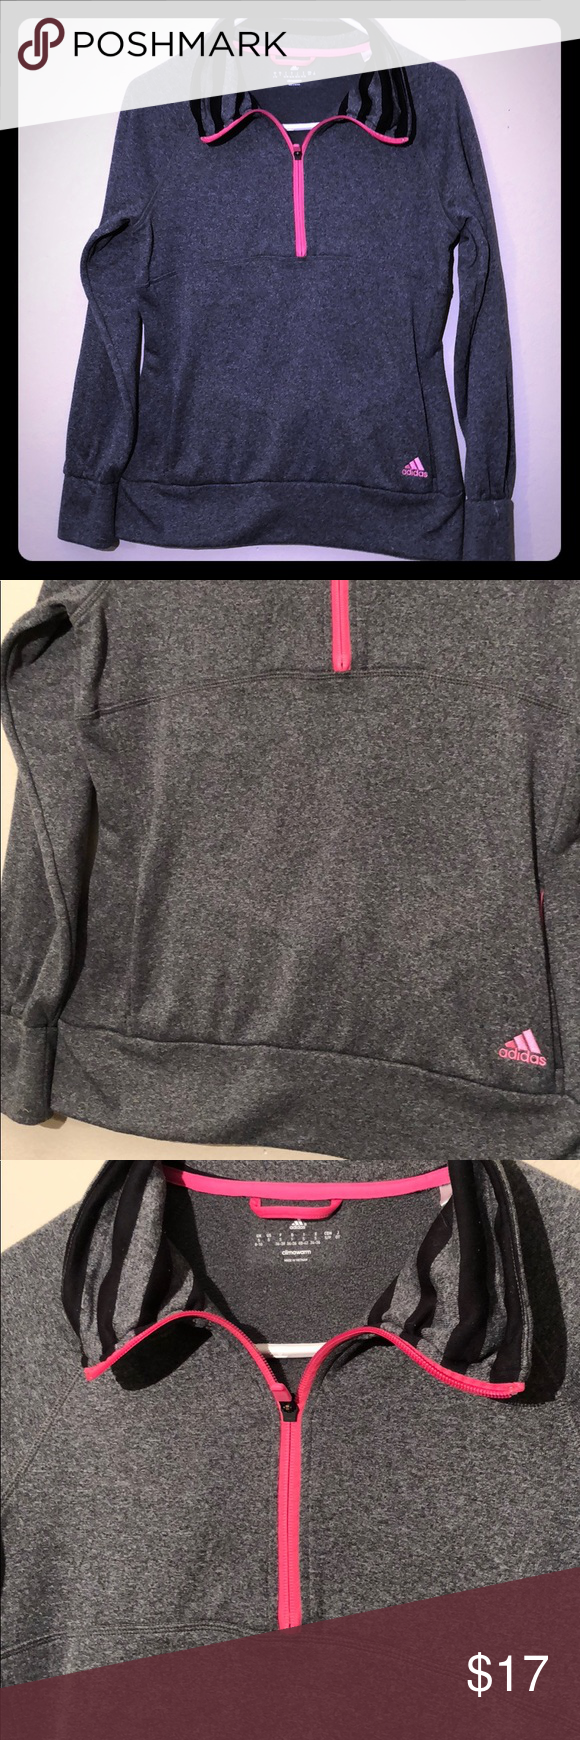 Adidas Gray Climawarm Pull on Sweater Sweater Gray Climawarm Small | f1cb82a - hvorvikankobe.website